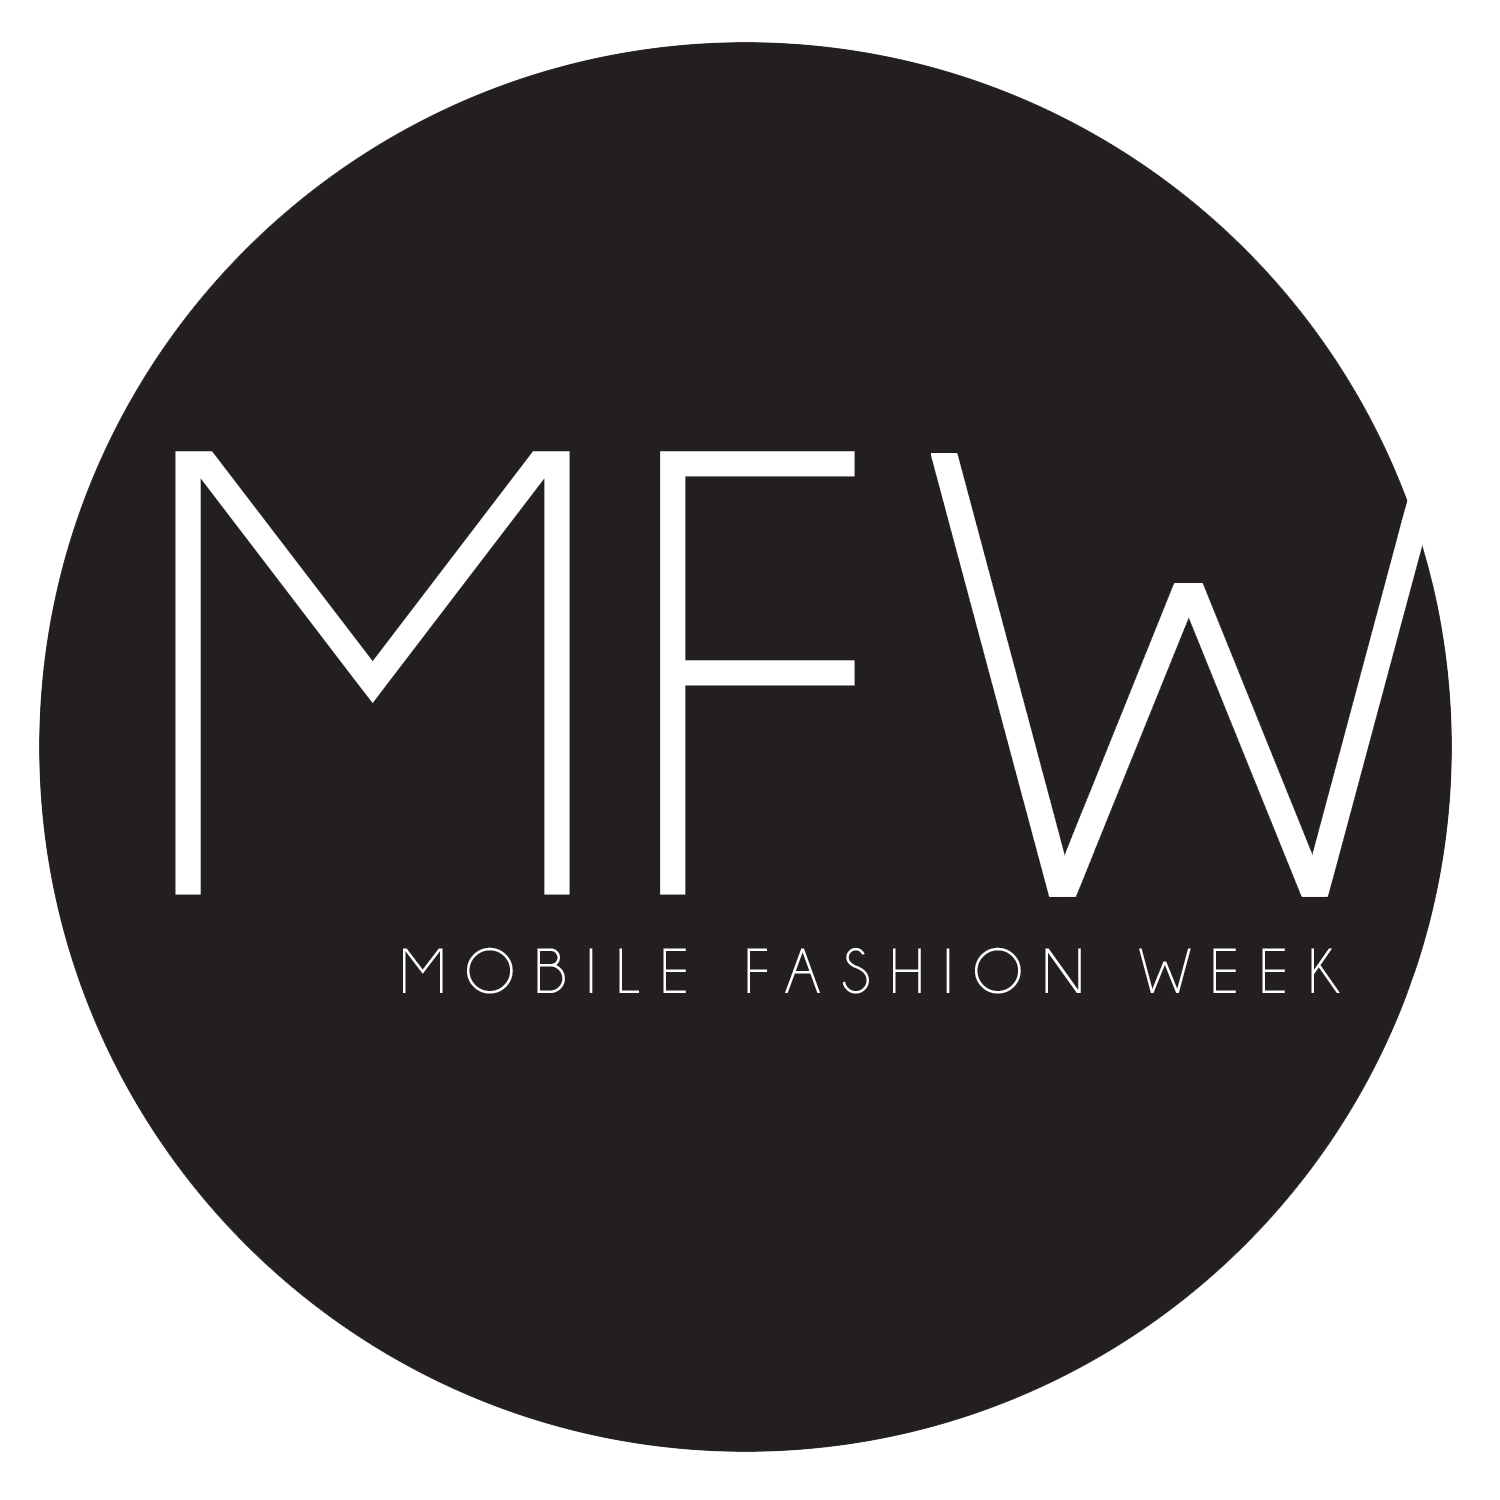 Mobile Fashion Week